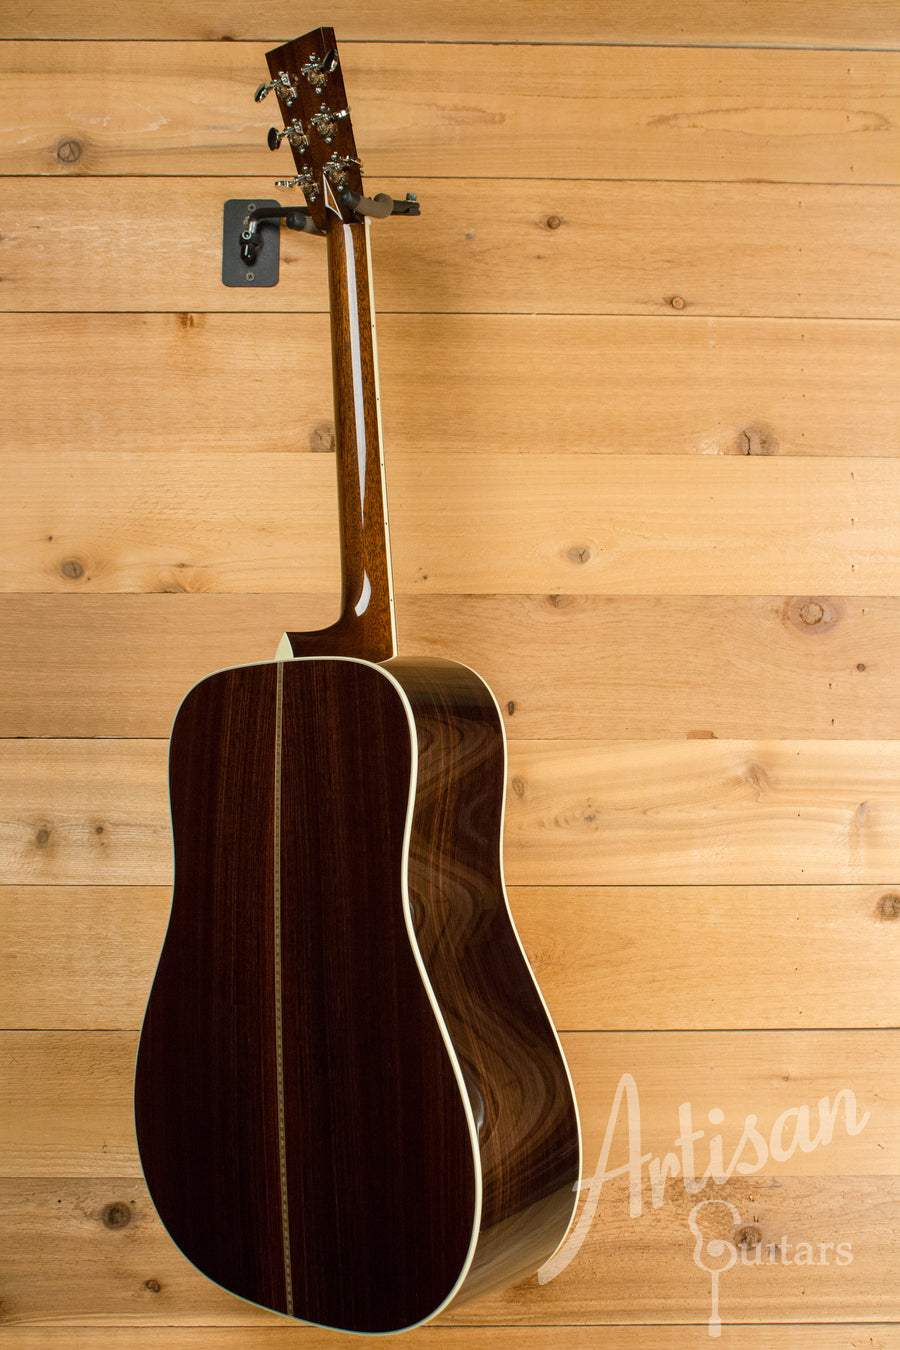 Collings CW with Adirondack and Indian Rosewood ID-10971 - Artisan Guitars